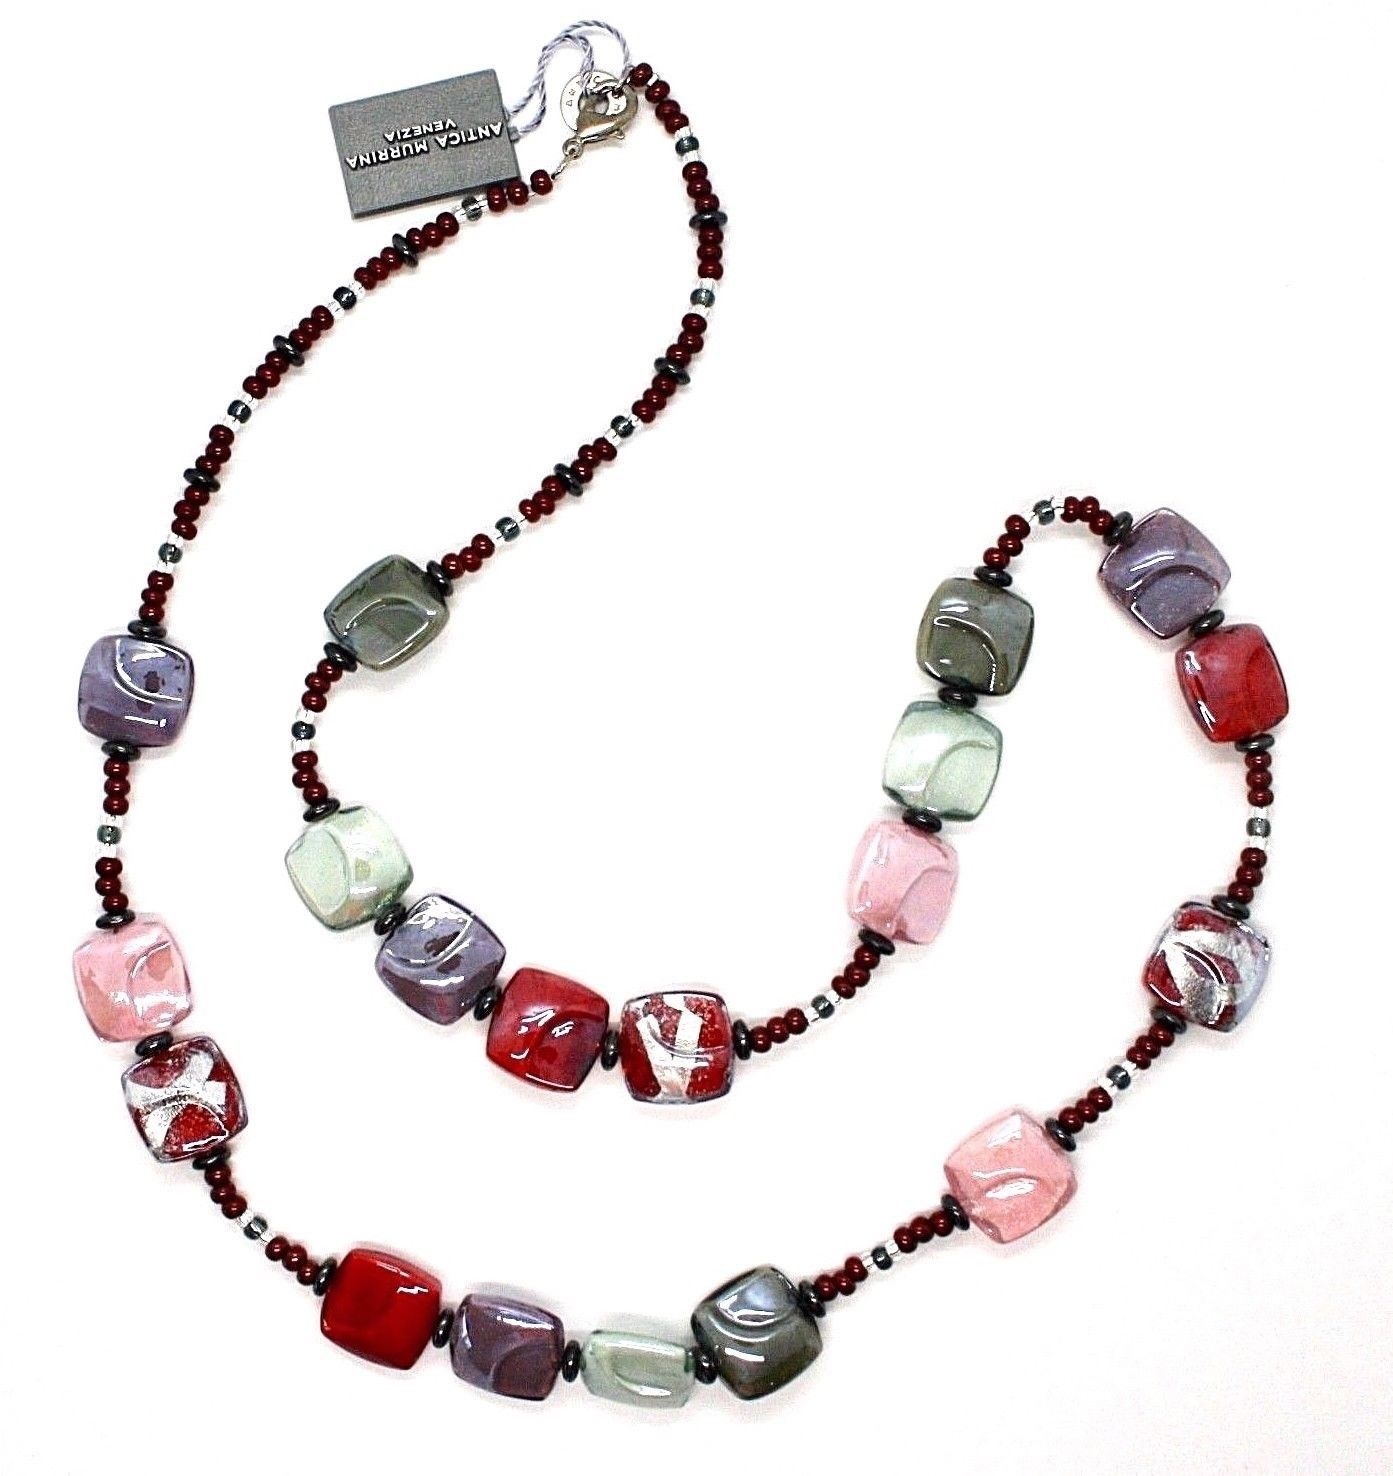 NECKLACE ANTICA MURRINA VENEZIA WITH MURANO GLASS PINK GRAY PURPLE CO987A11